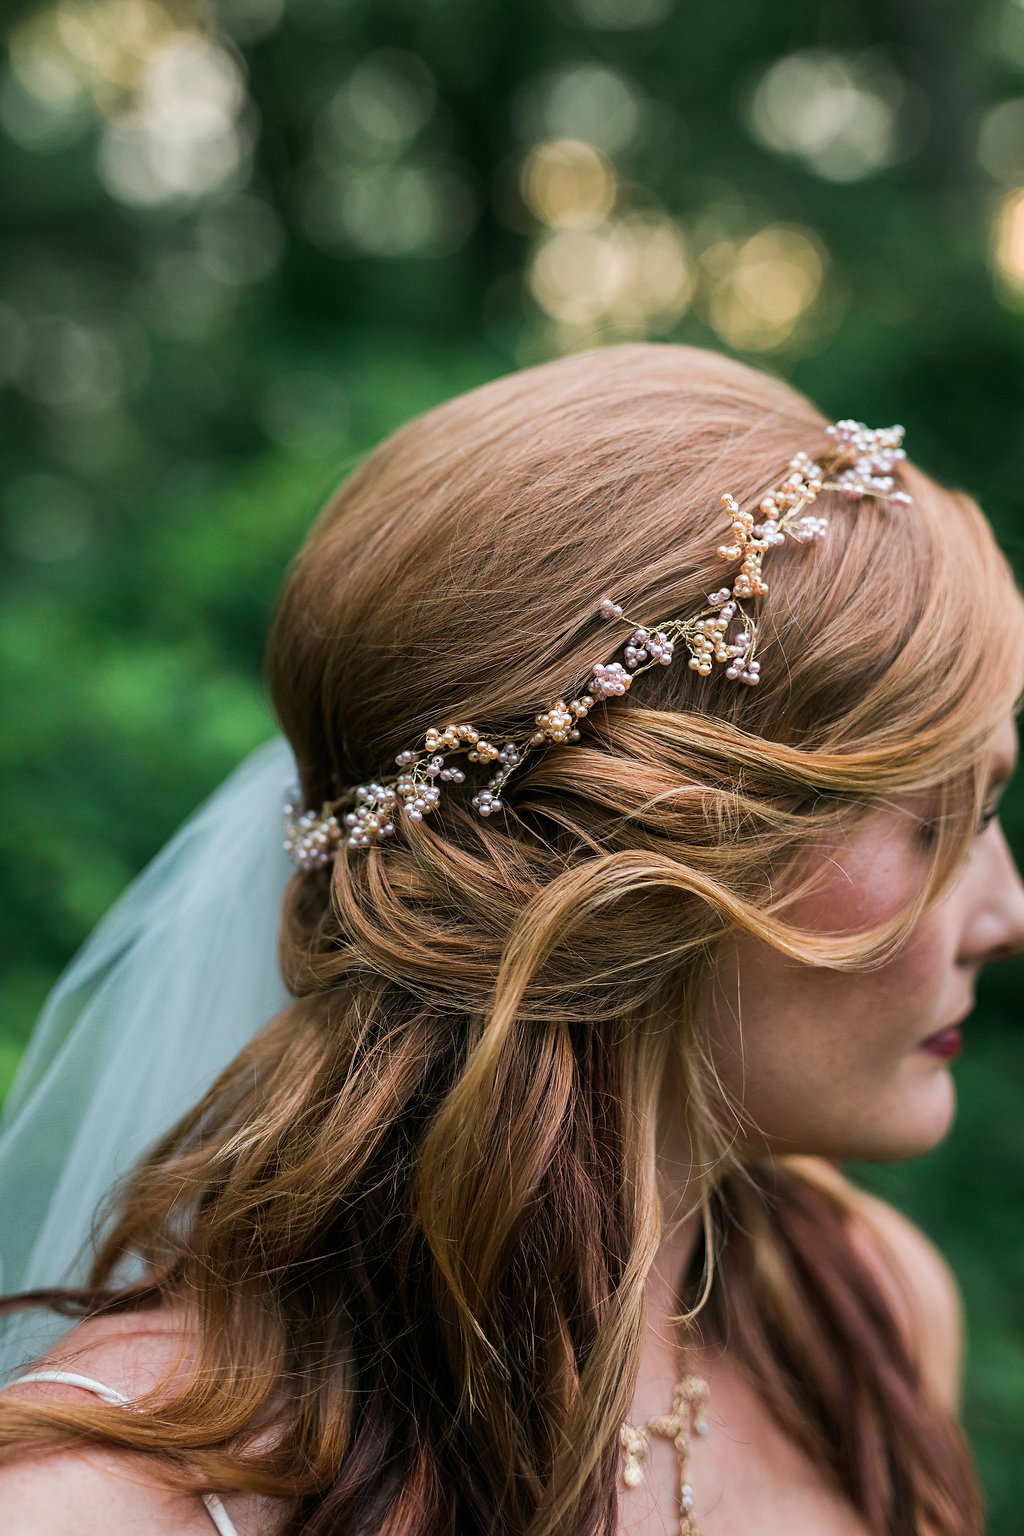 embellished wedding hair accessories - photo by Katie Ricard Photography http://ruffledblog.com/dramatic-woodland-wedding-inspiration-with-burgundy-accents